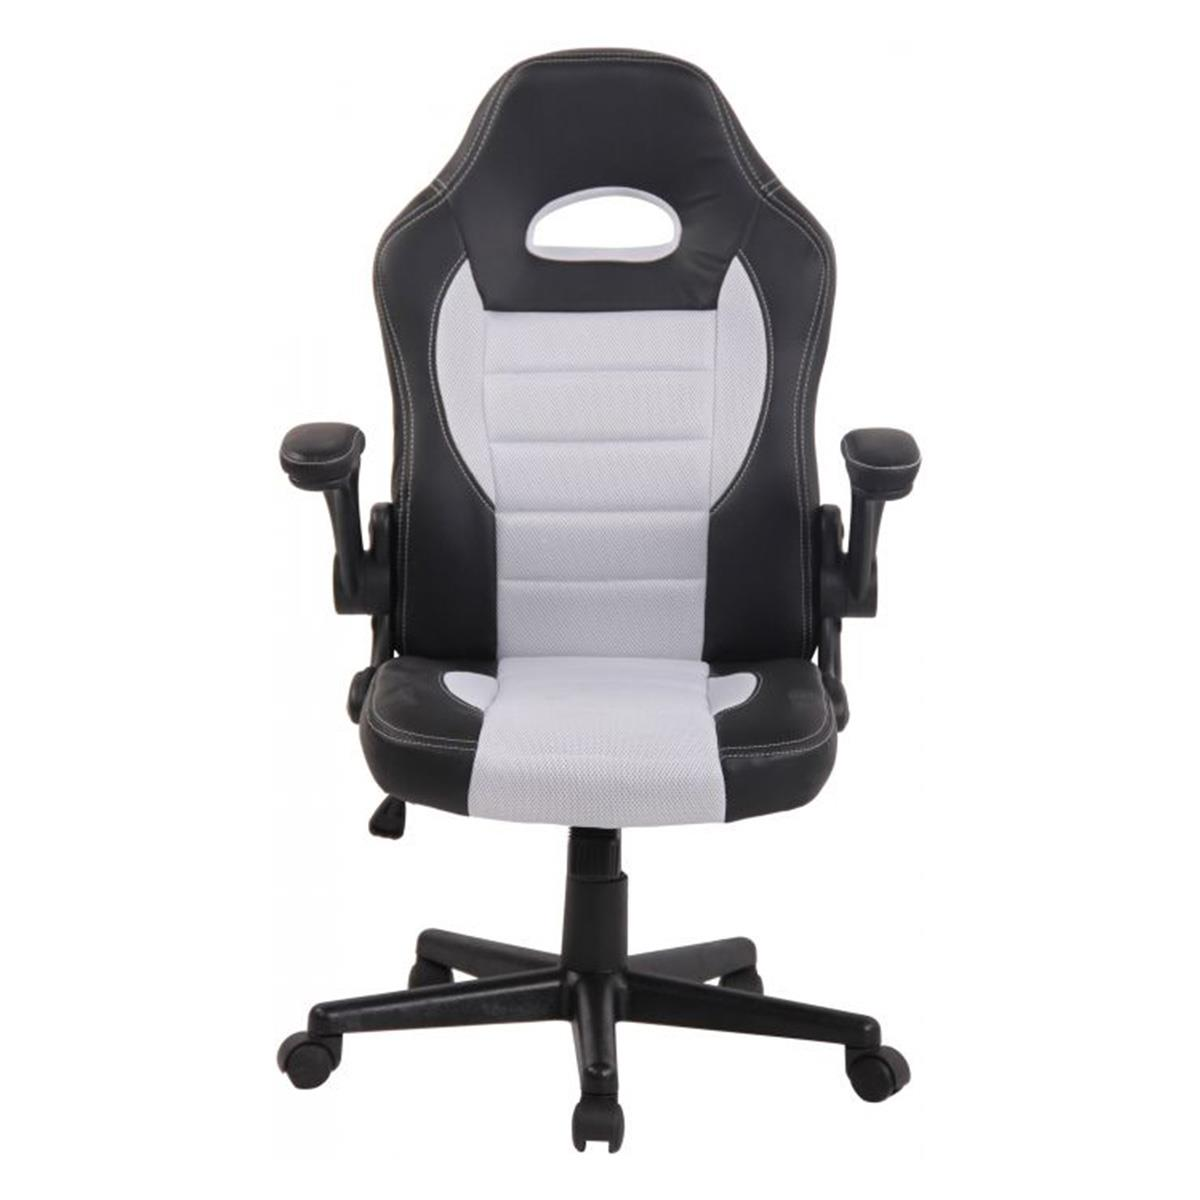 silla gaming deportiva lotus malla color blanco